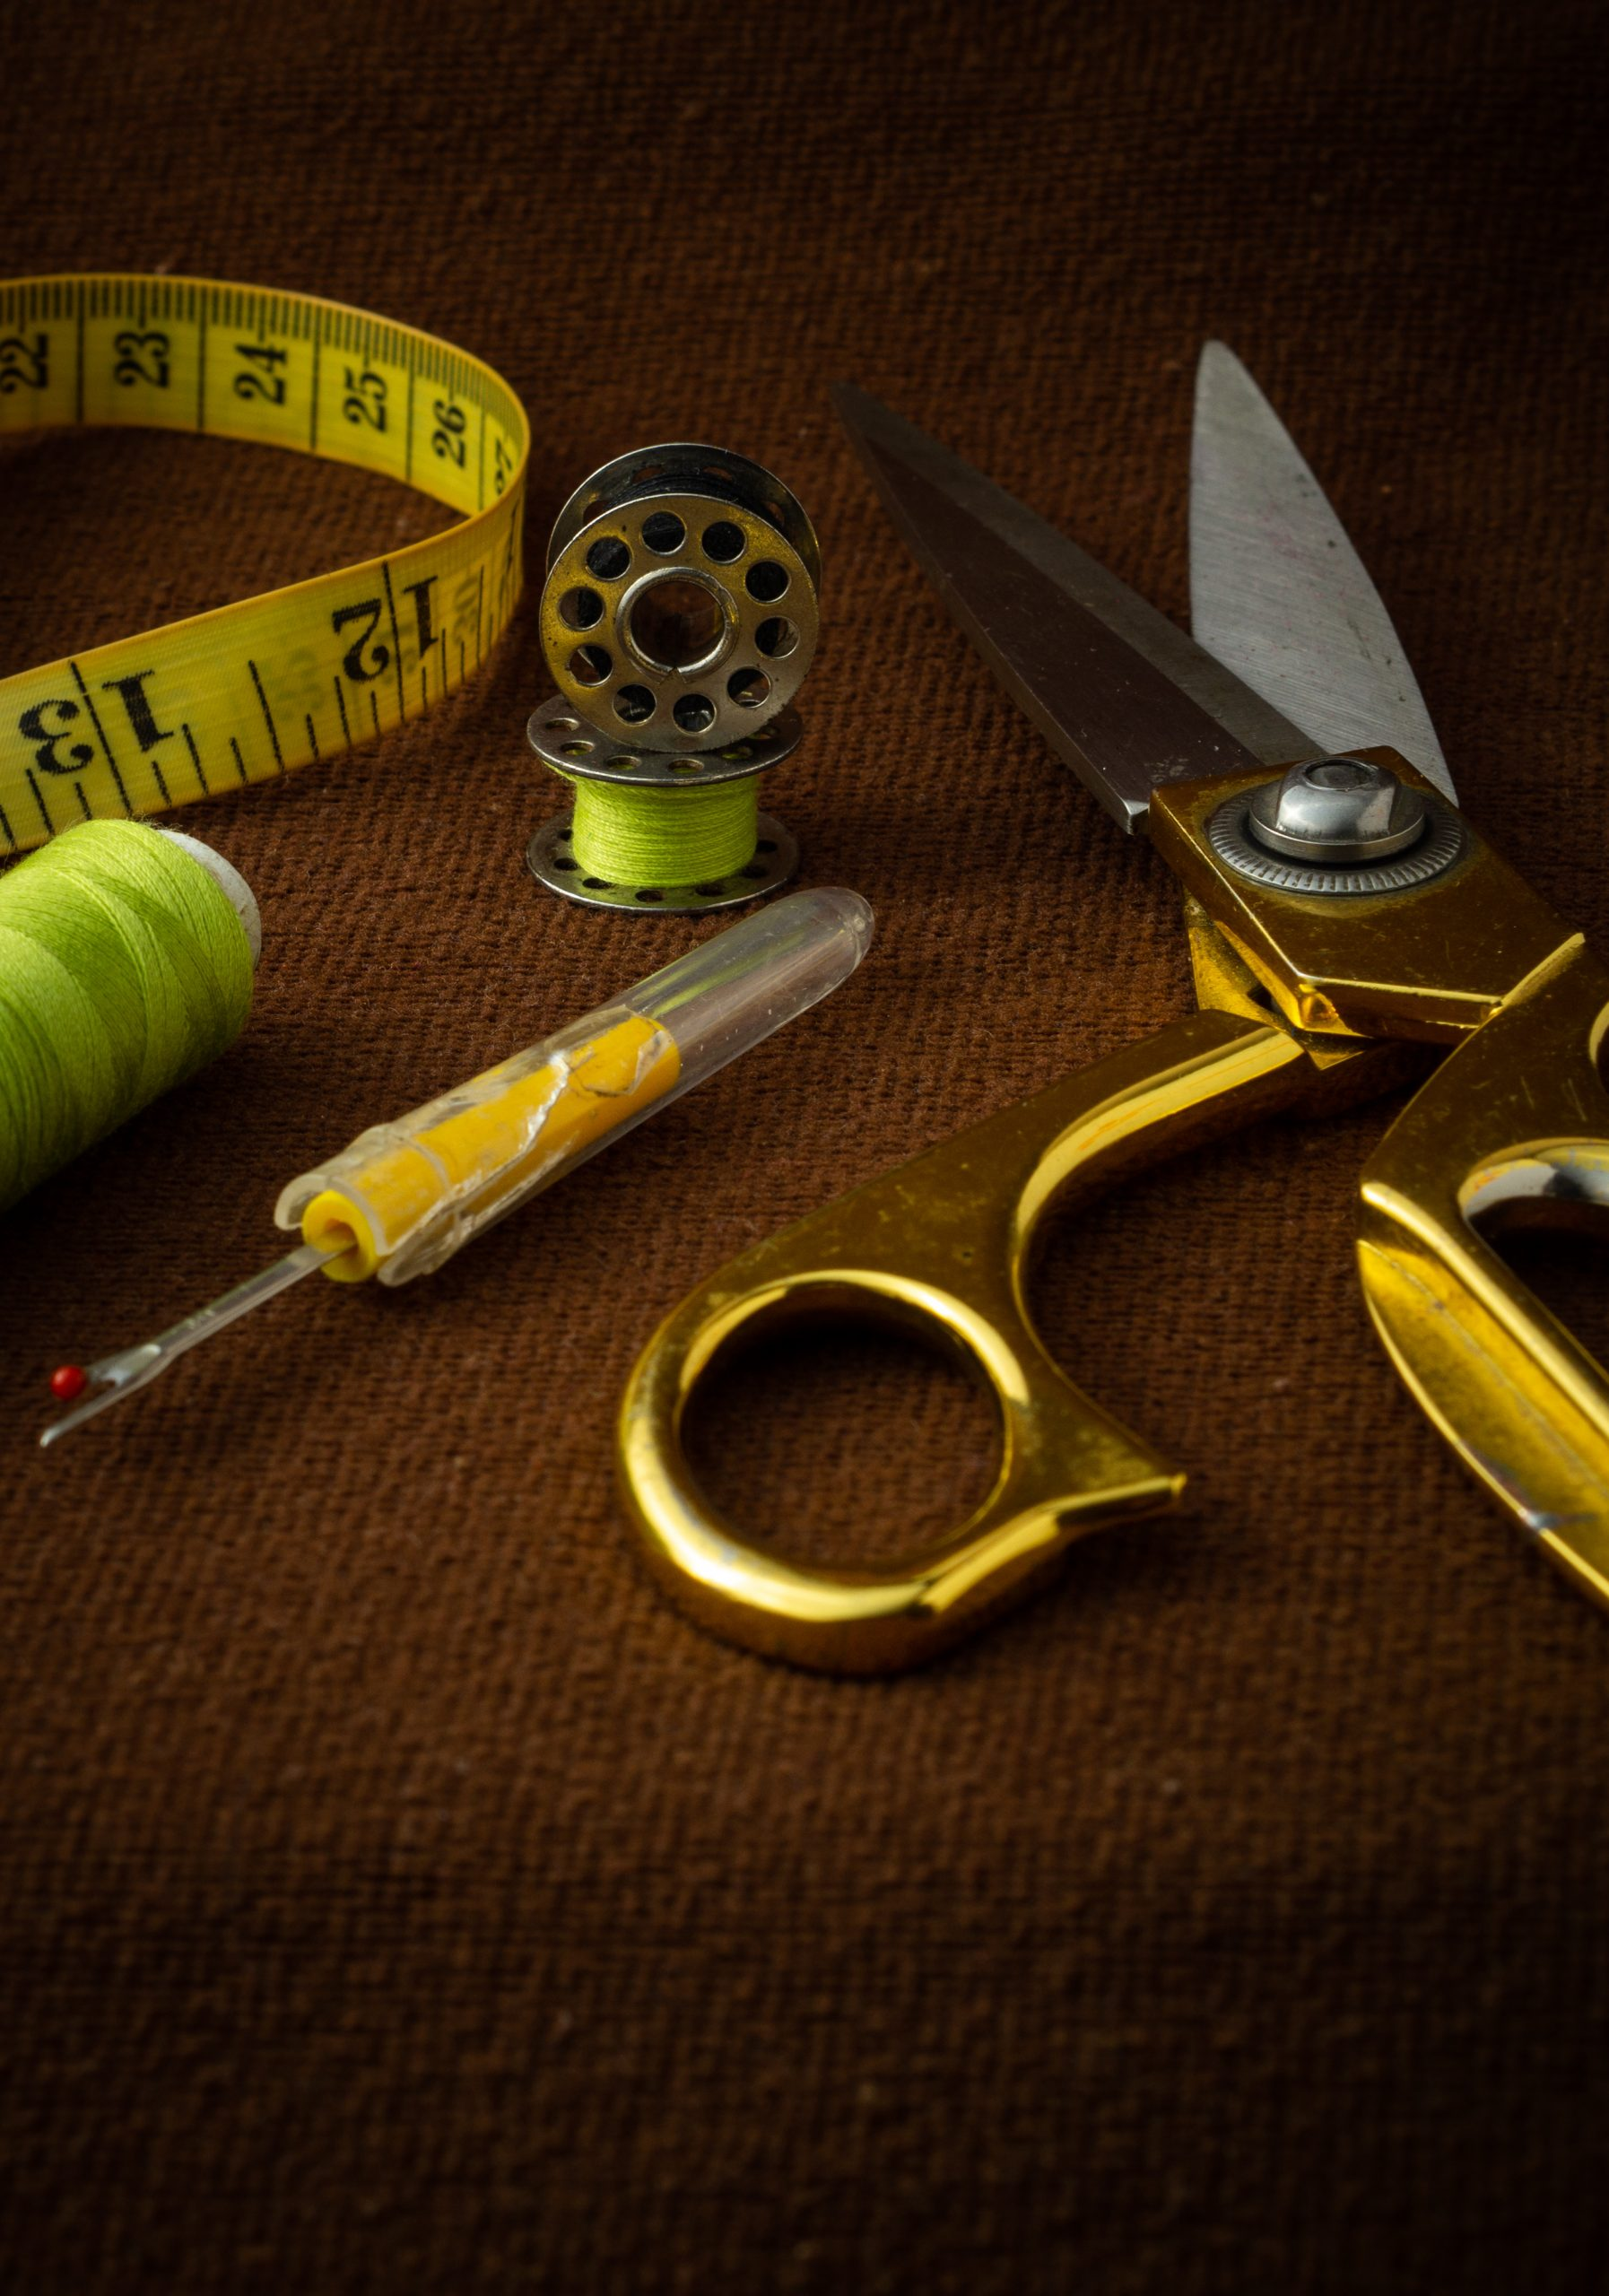 Tools used in tailoring